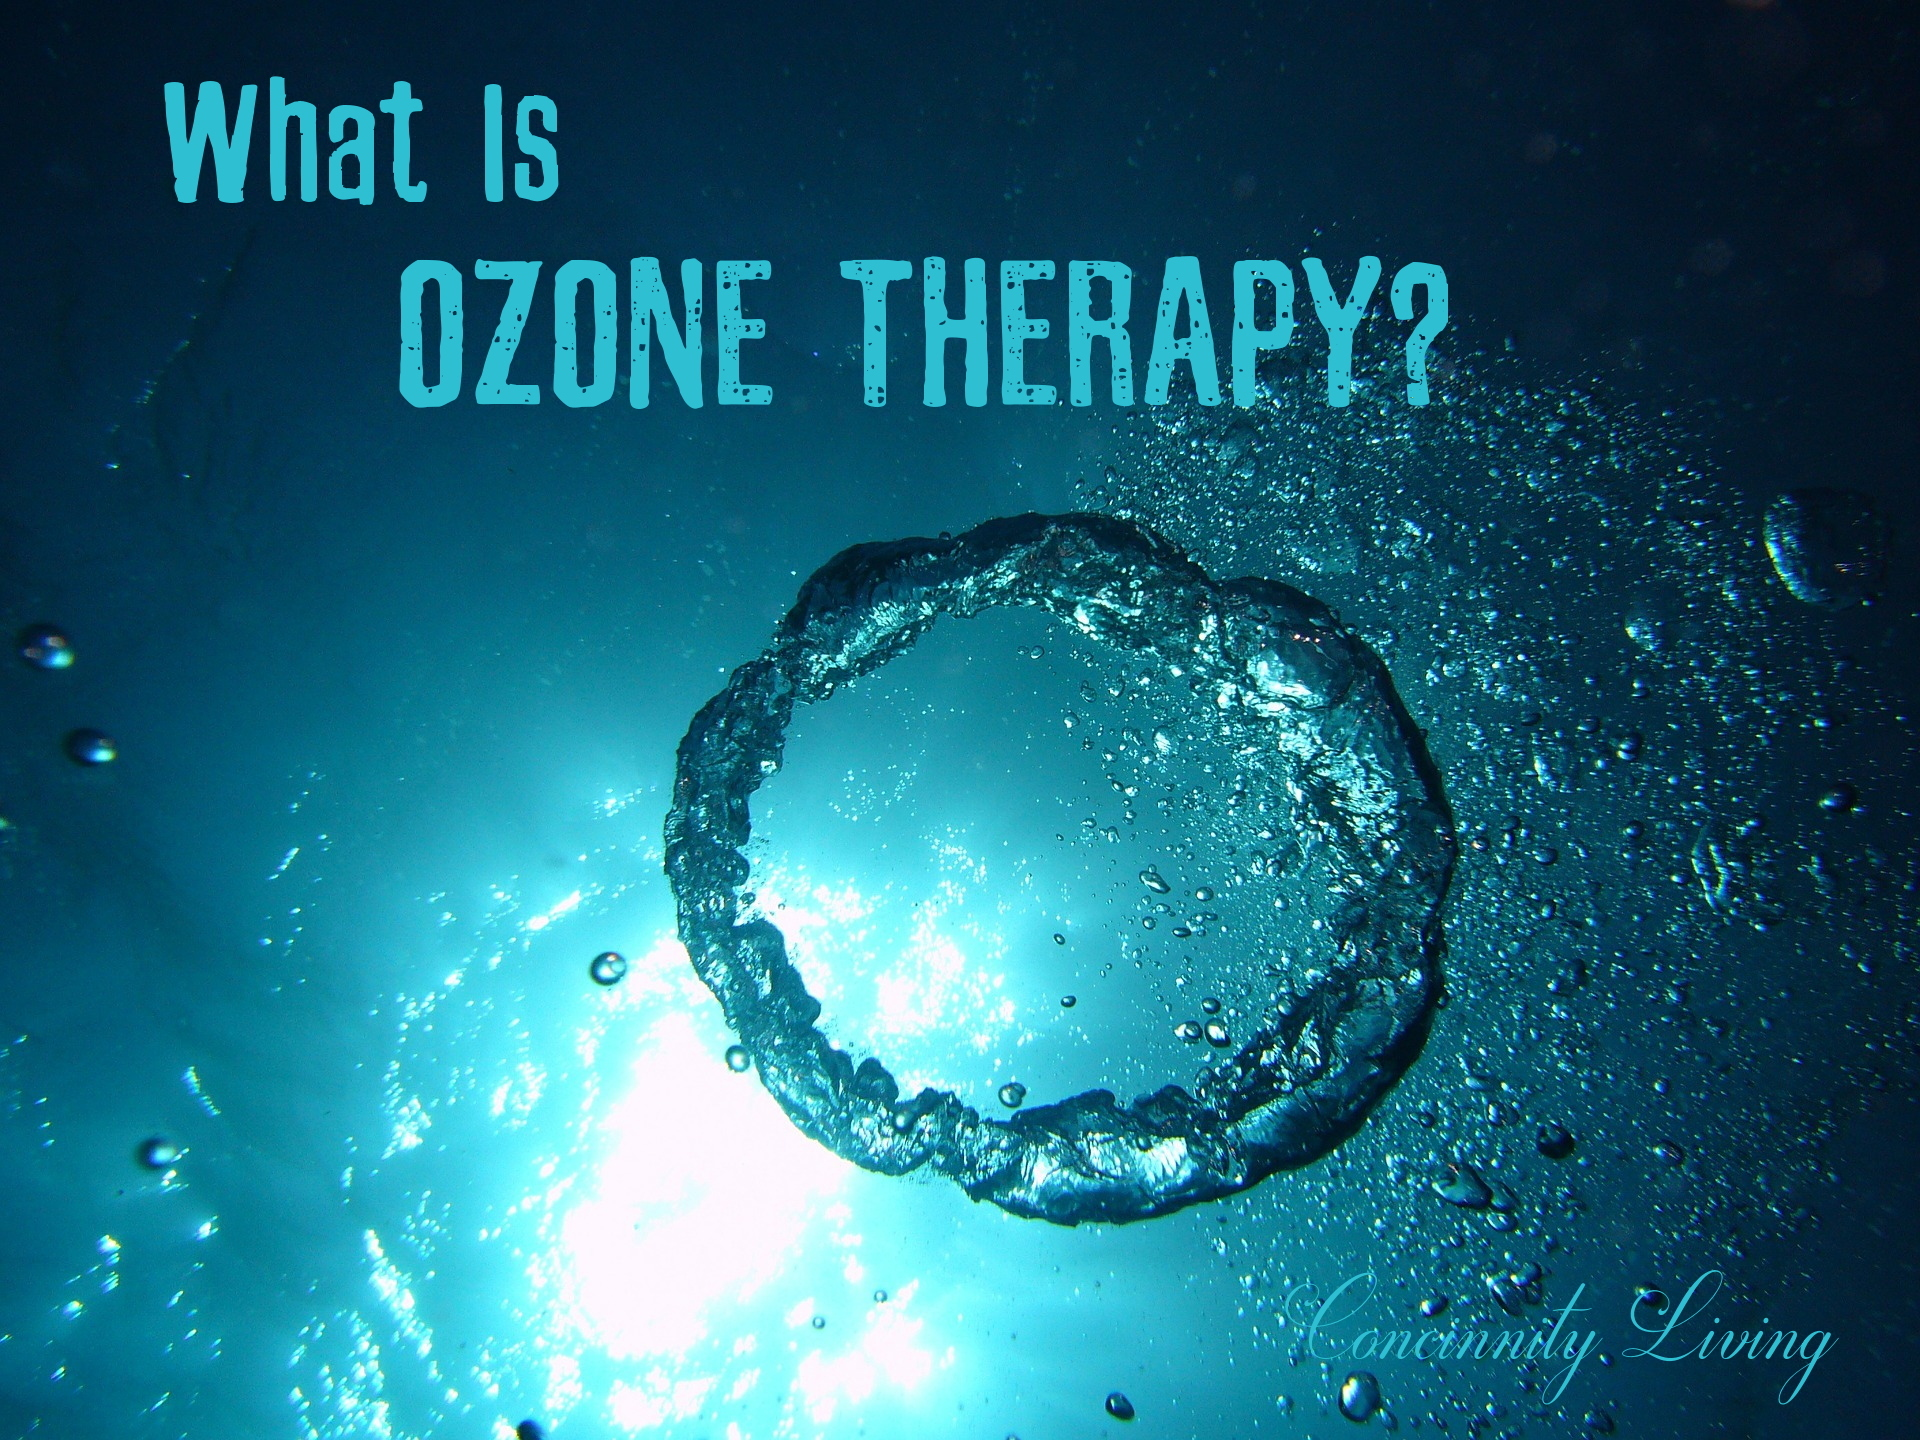 Hpv ozone therapy